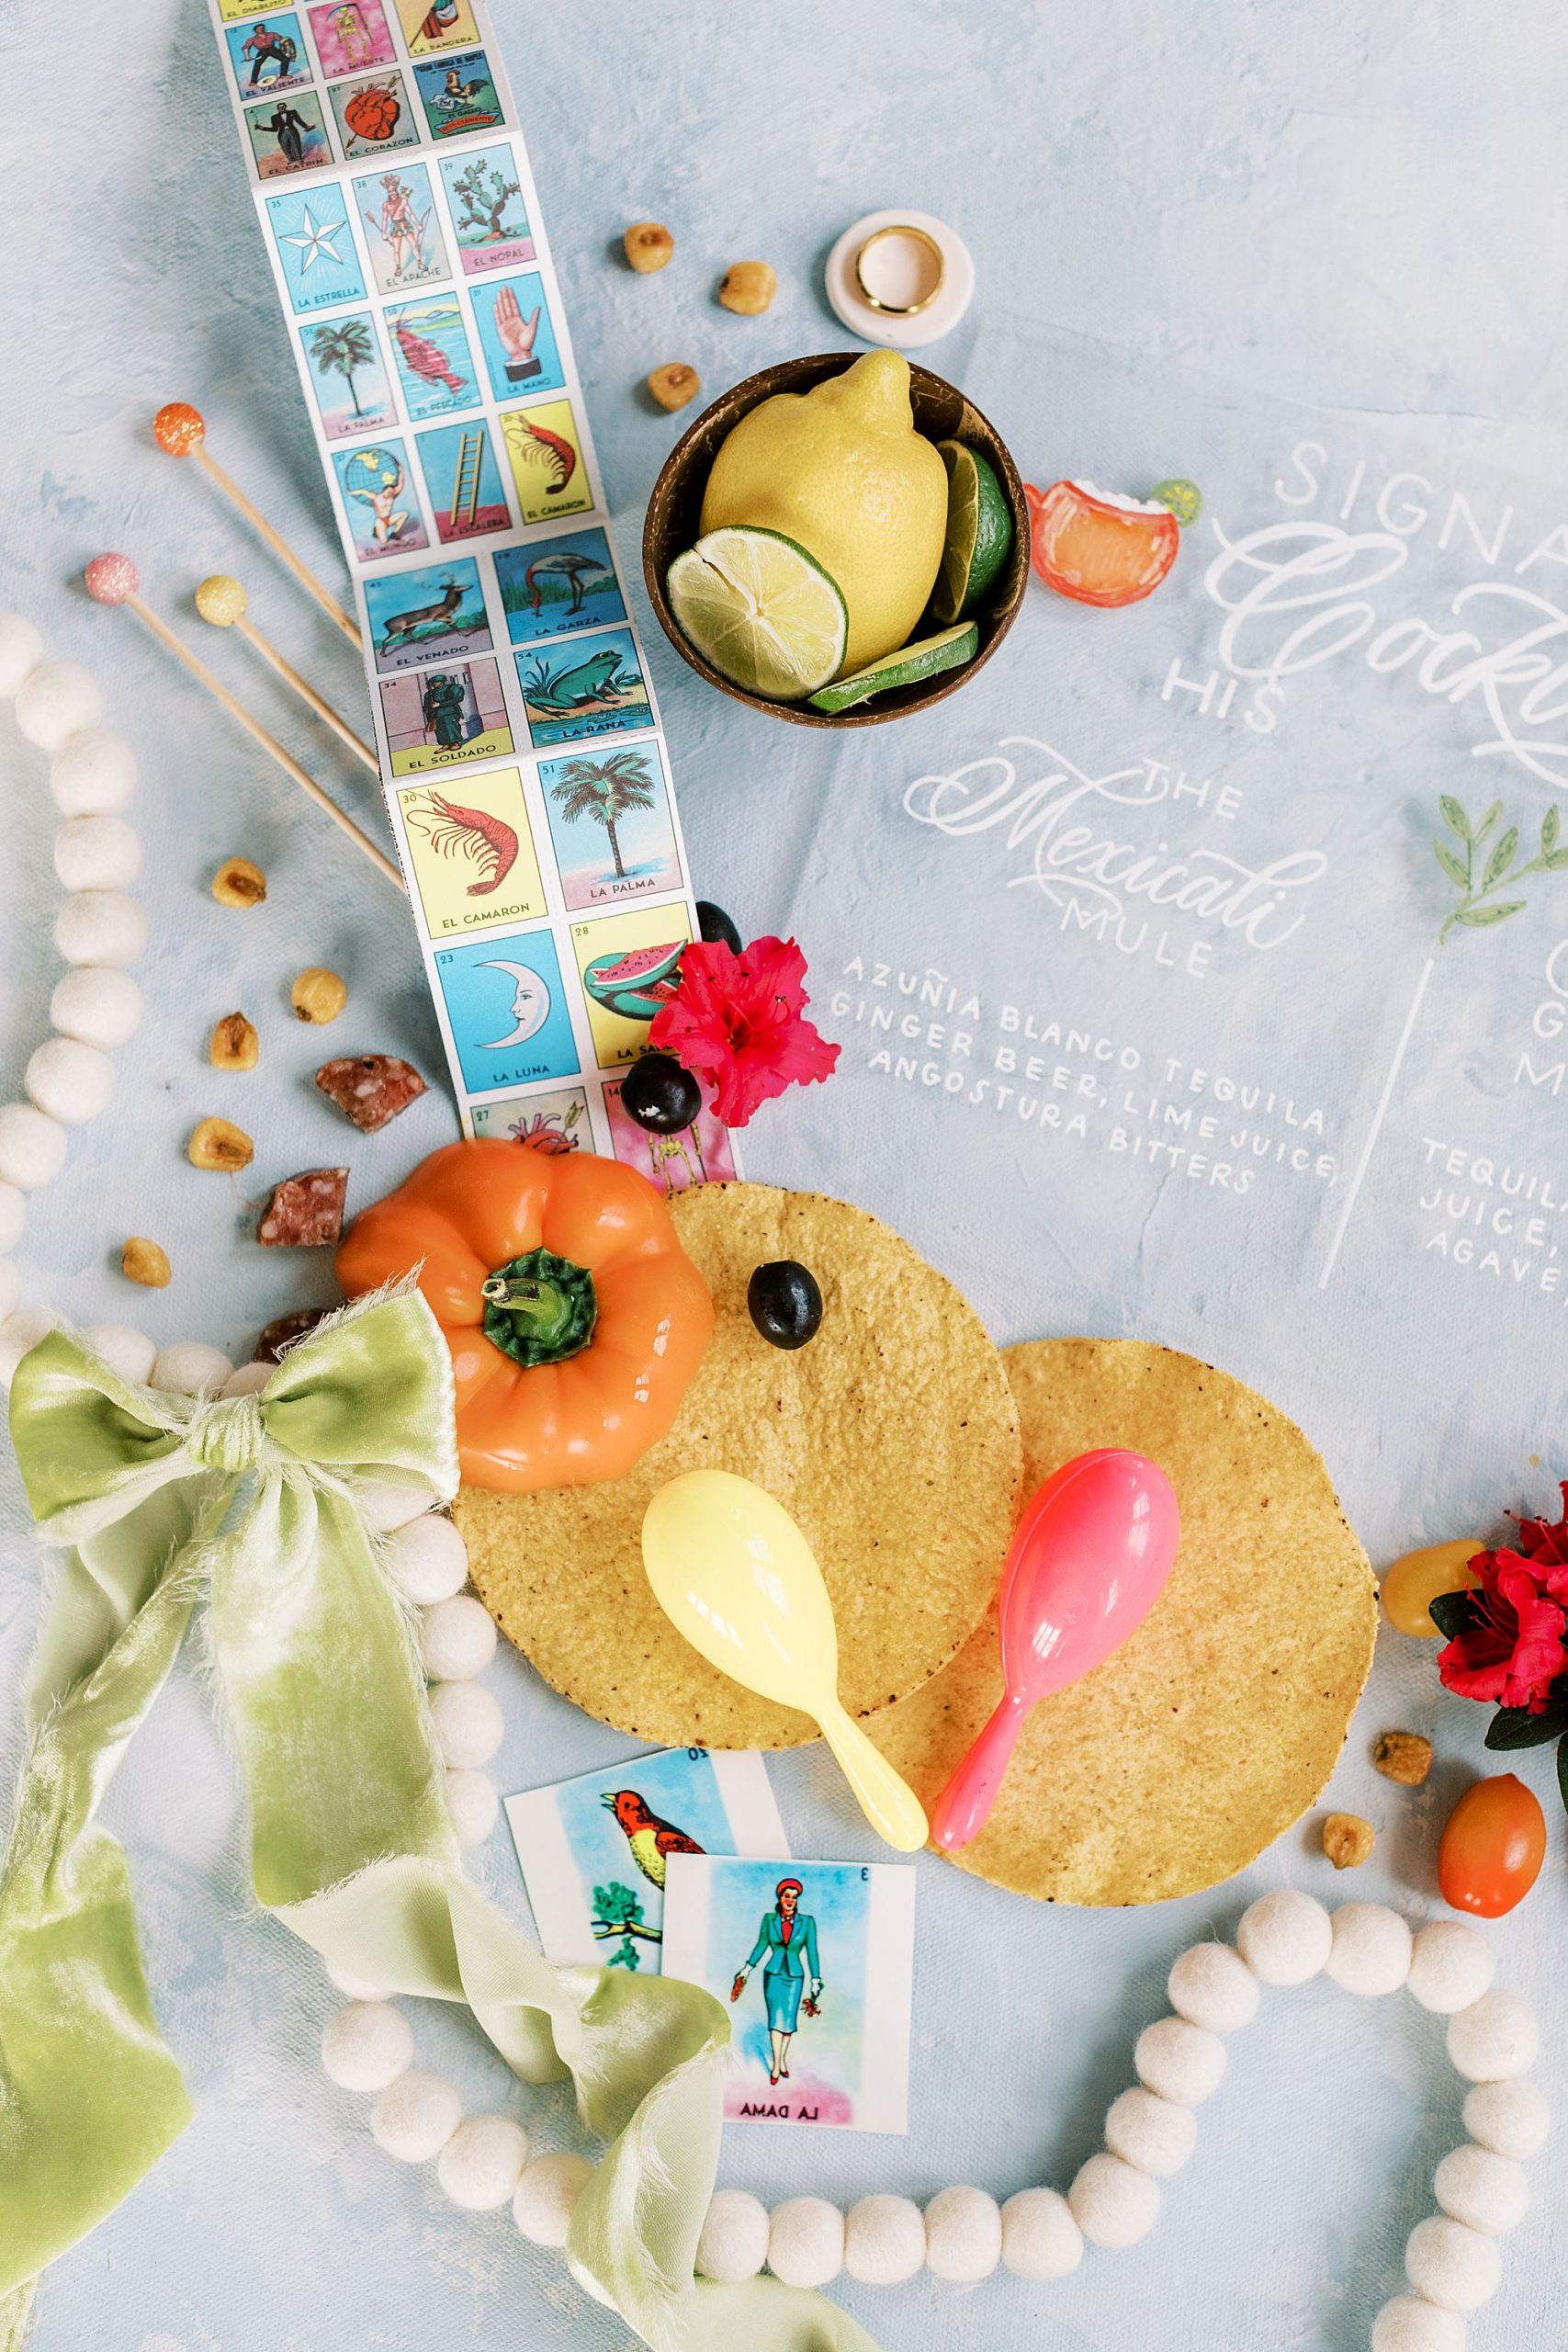 Cinco De Mayo Inspiration for Your FIesta - Party Crush Studio and Ashley Baumgartner_0058.jpg